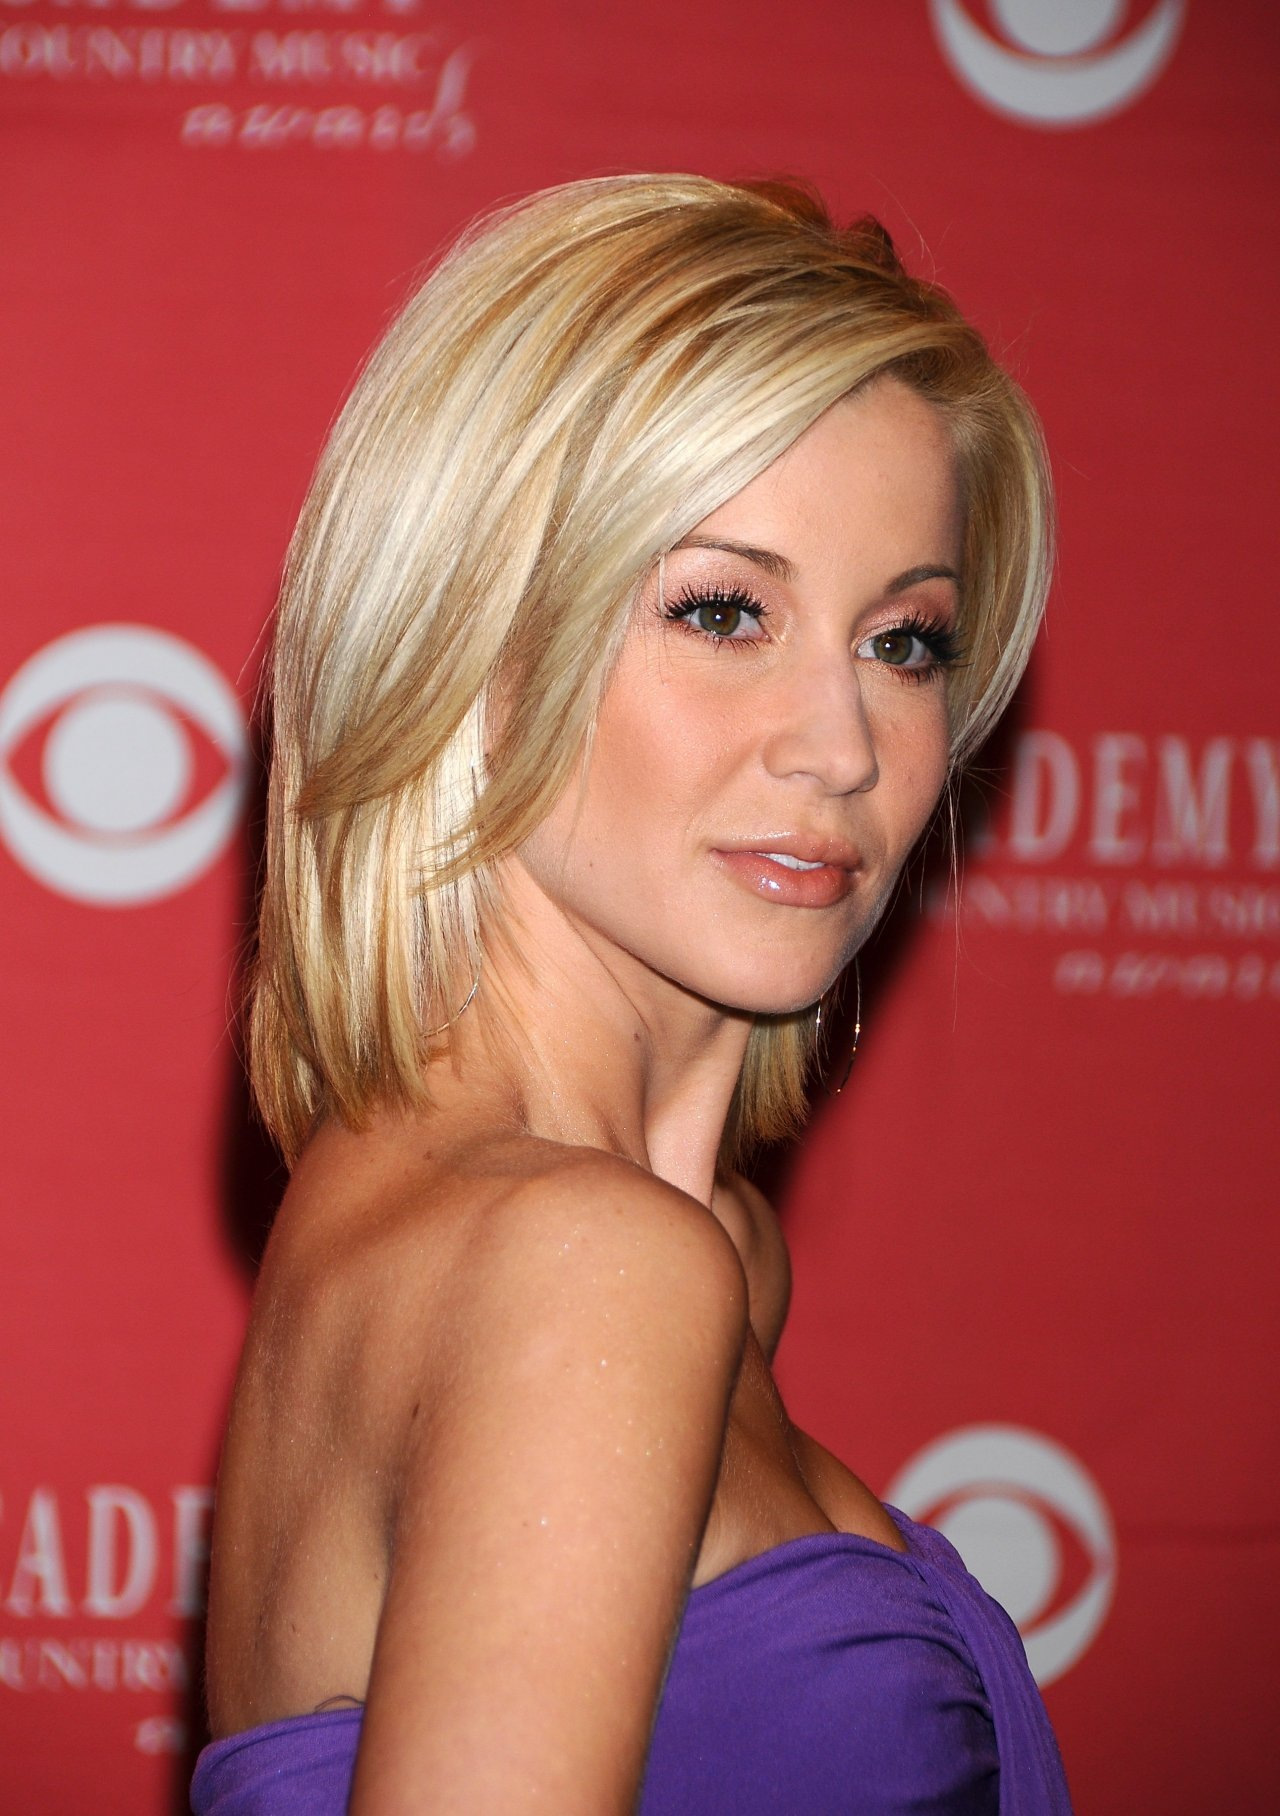 Kellie Pickler Wallpapers High Quality Download Free